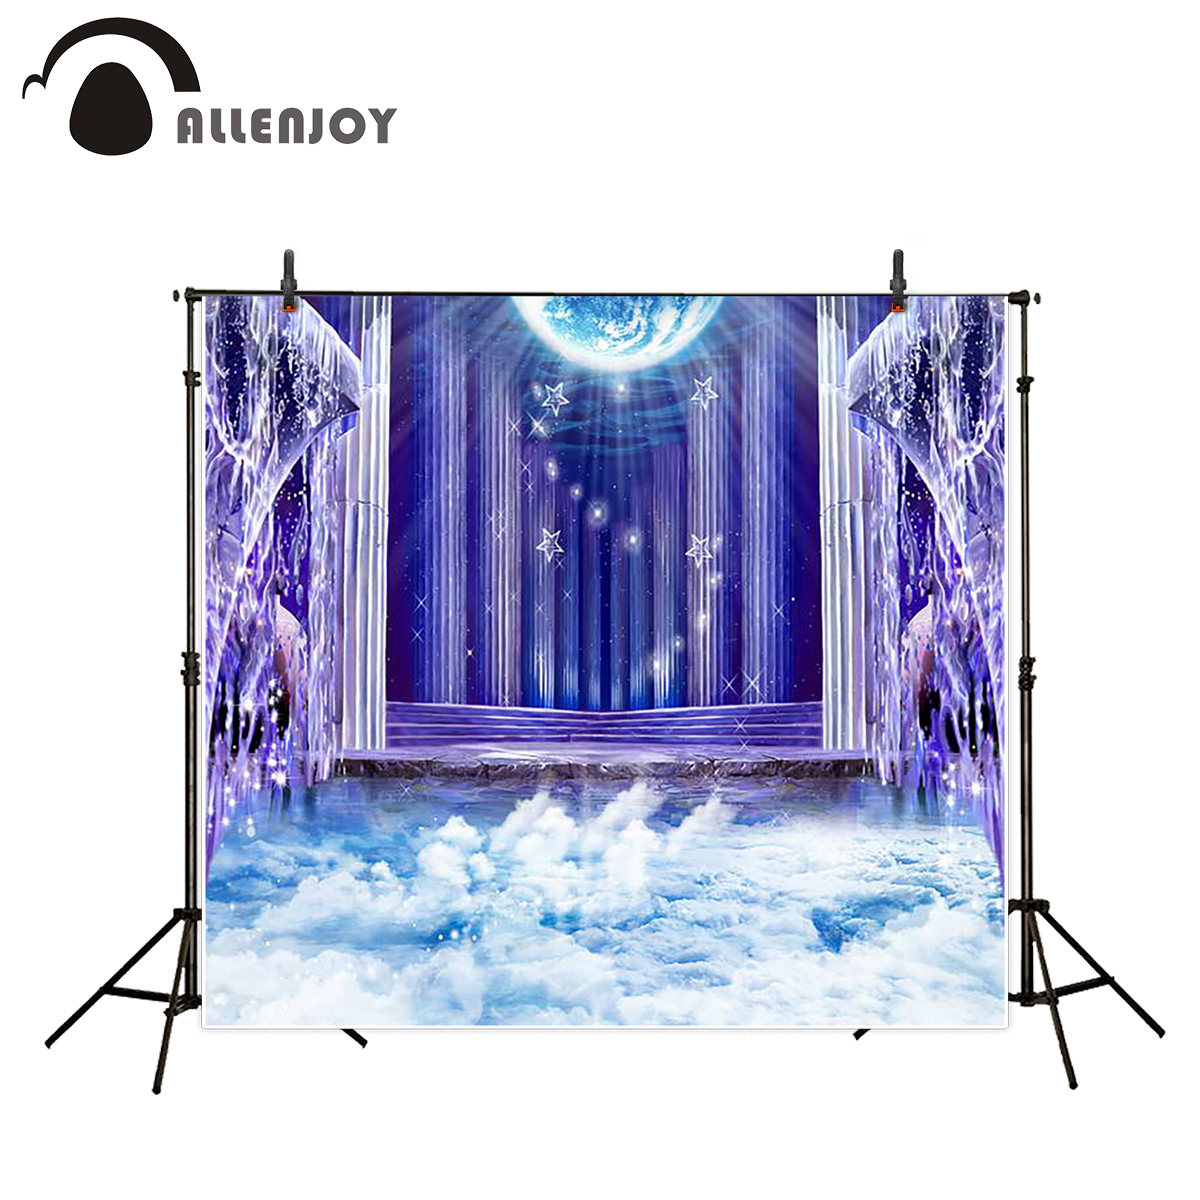 Allenjoy photography backdrop cloud glitter moon stars wonderland backgrounds professional computer printing photo studio